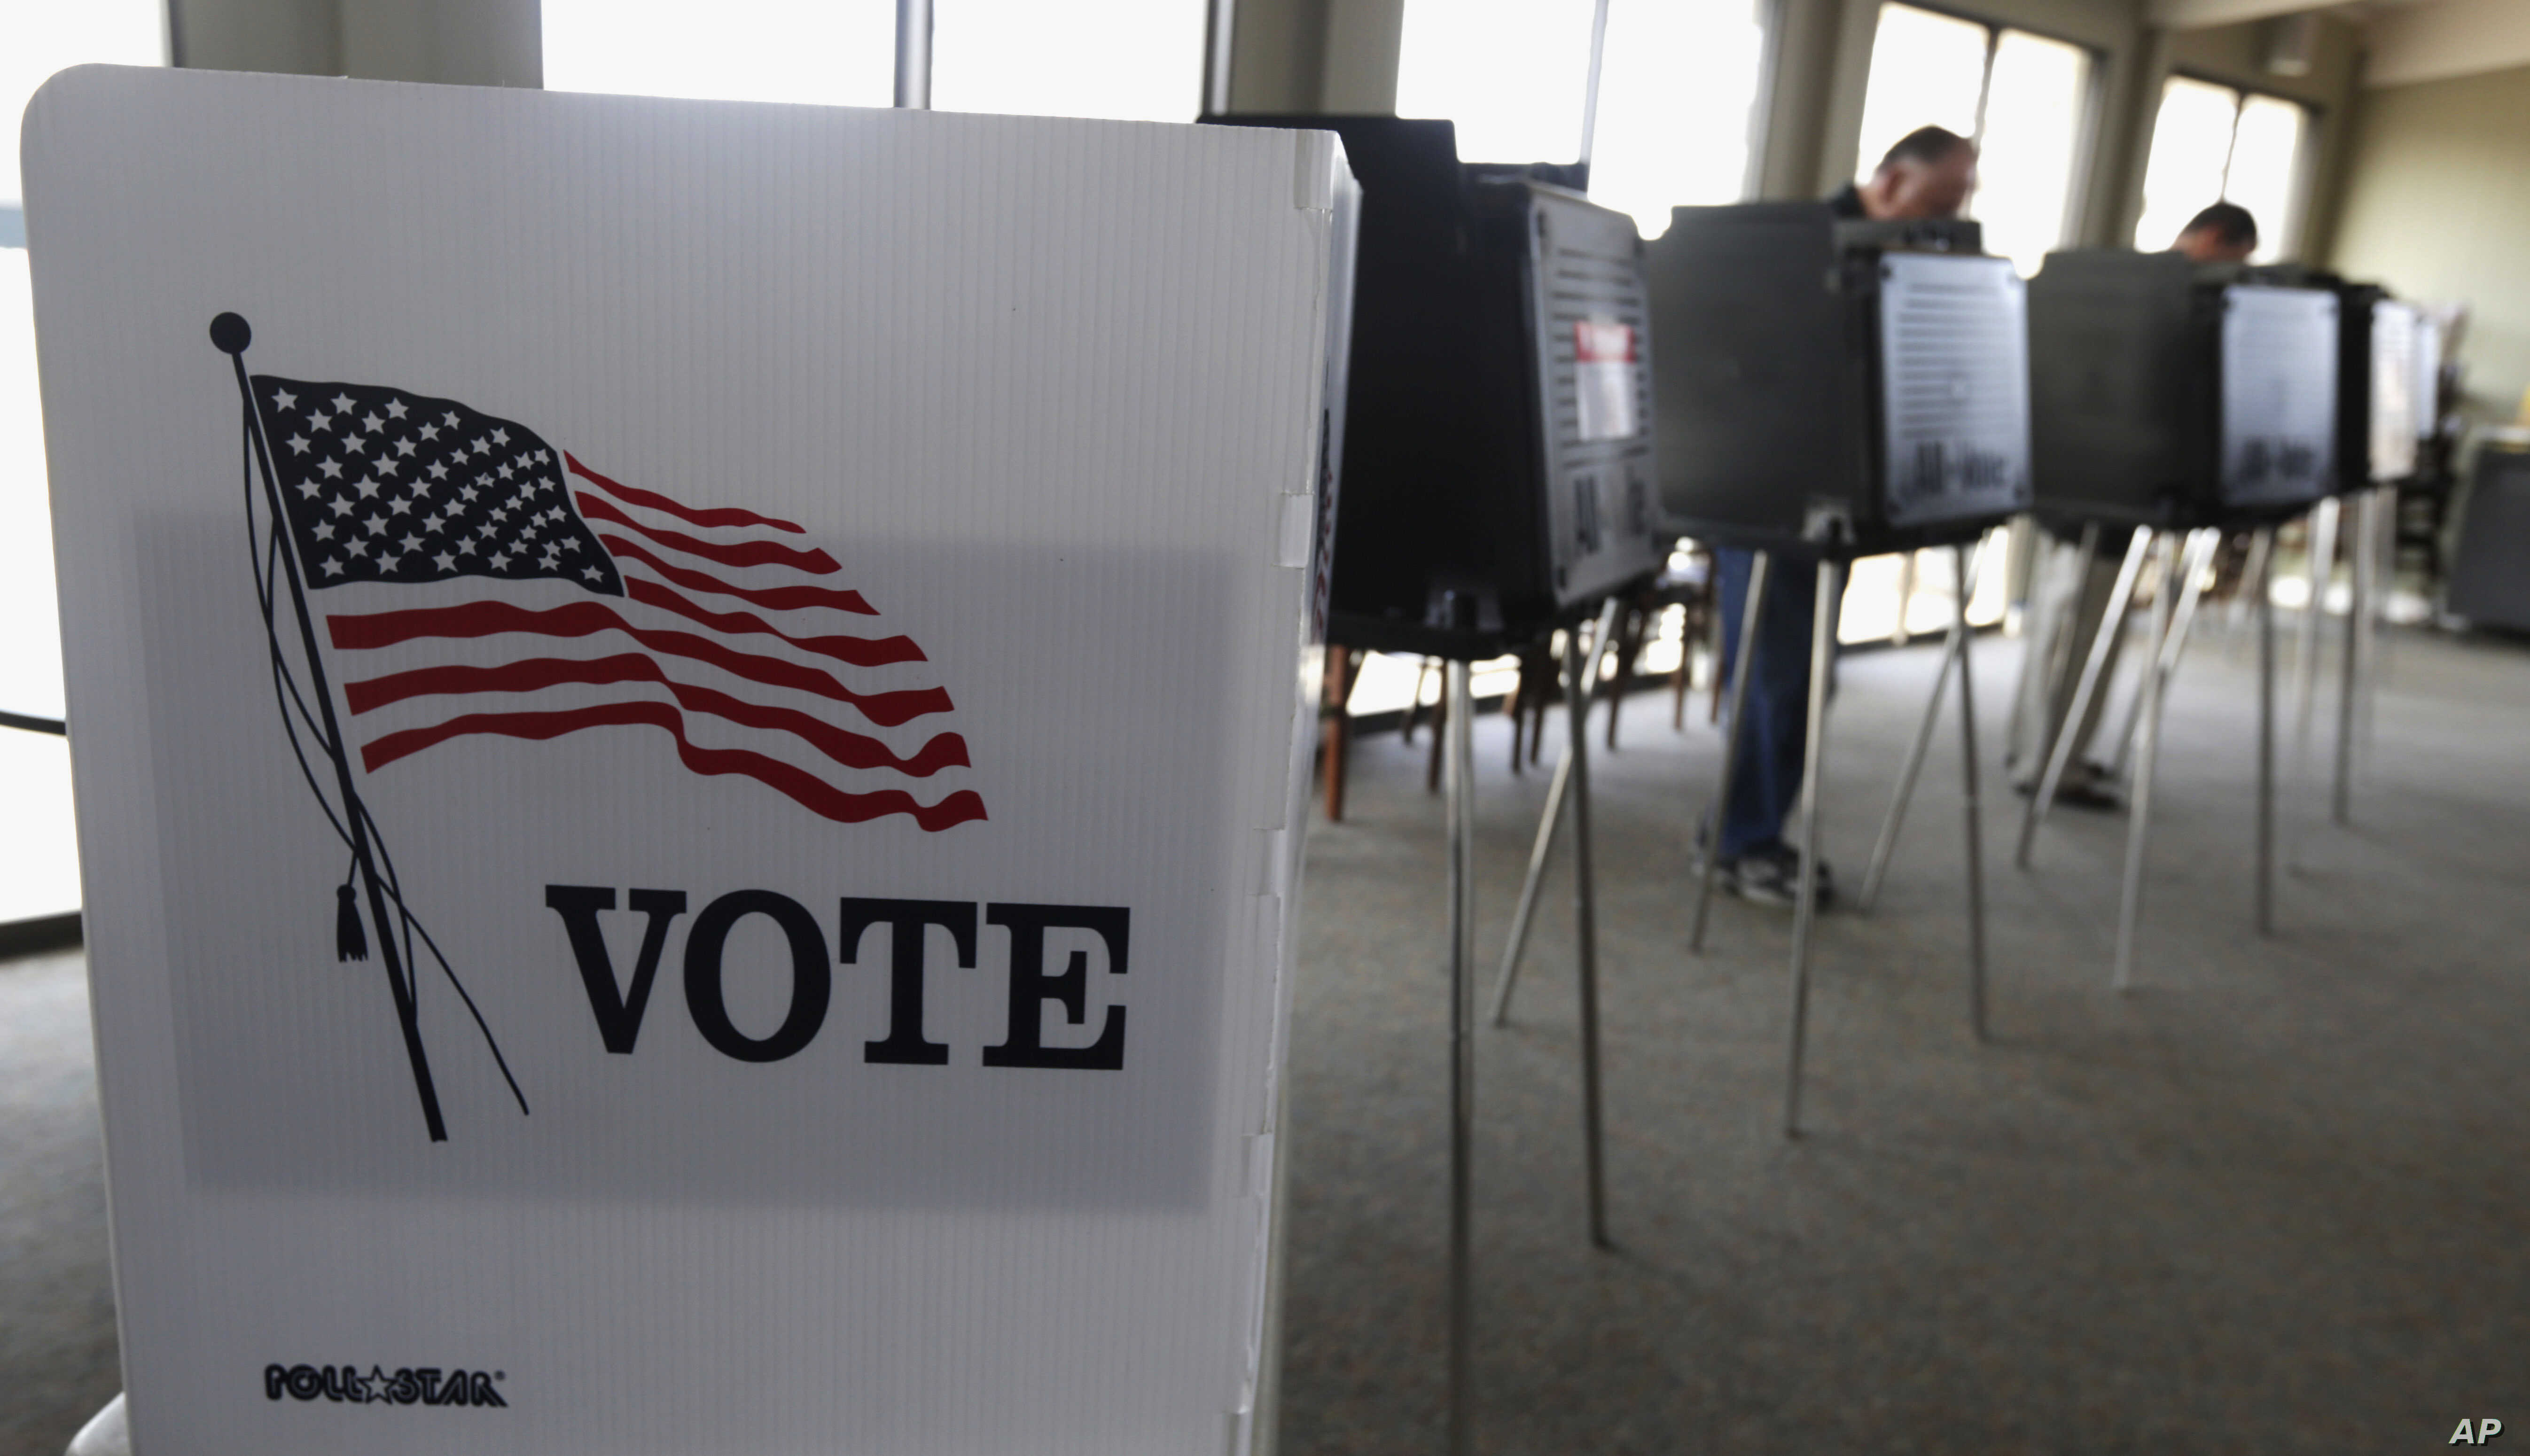 FILE - Voters cast ballots in the Illinois primary in Hinsdale, Ill., March 18, 2014. Illinois' top election officials insist that a recent hack into state voter rolls, which contain the names of 8 million active voters, does not pose a threat to the...